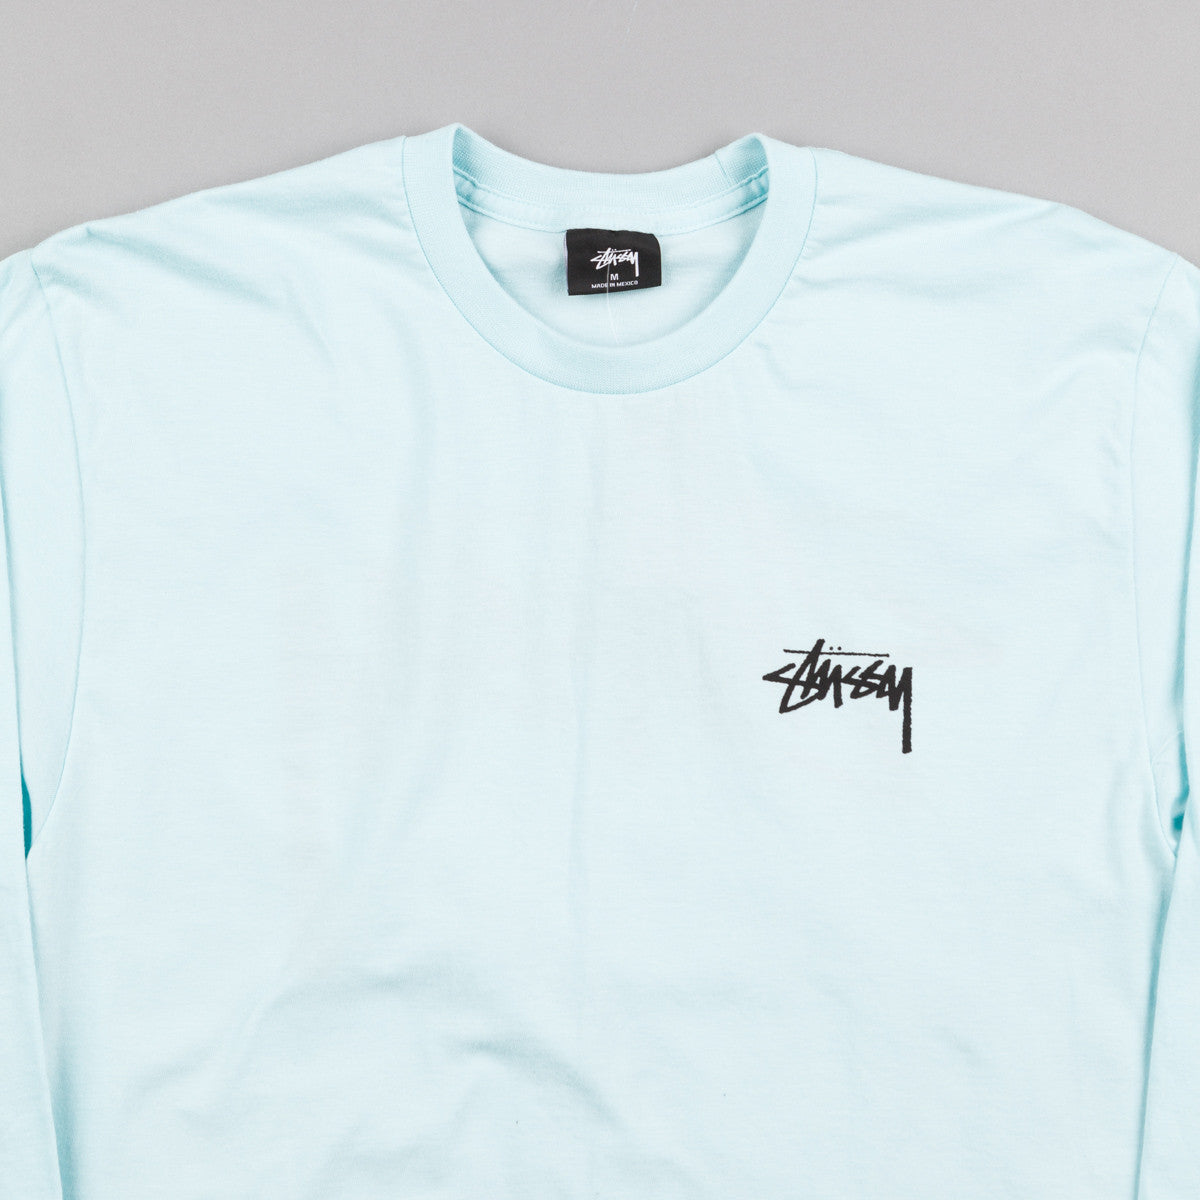 Stussy Original Stock Long Sleeve T-Shirt - Light Blue